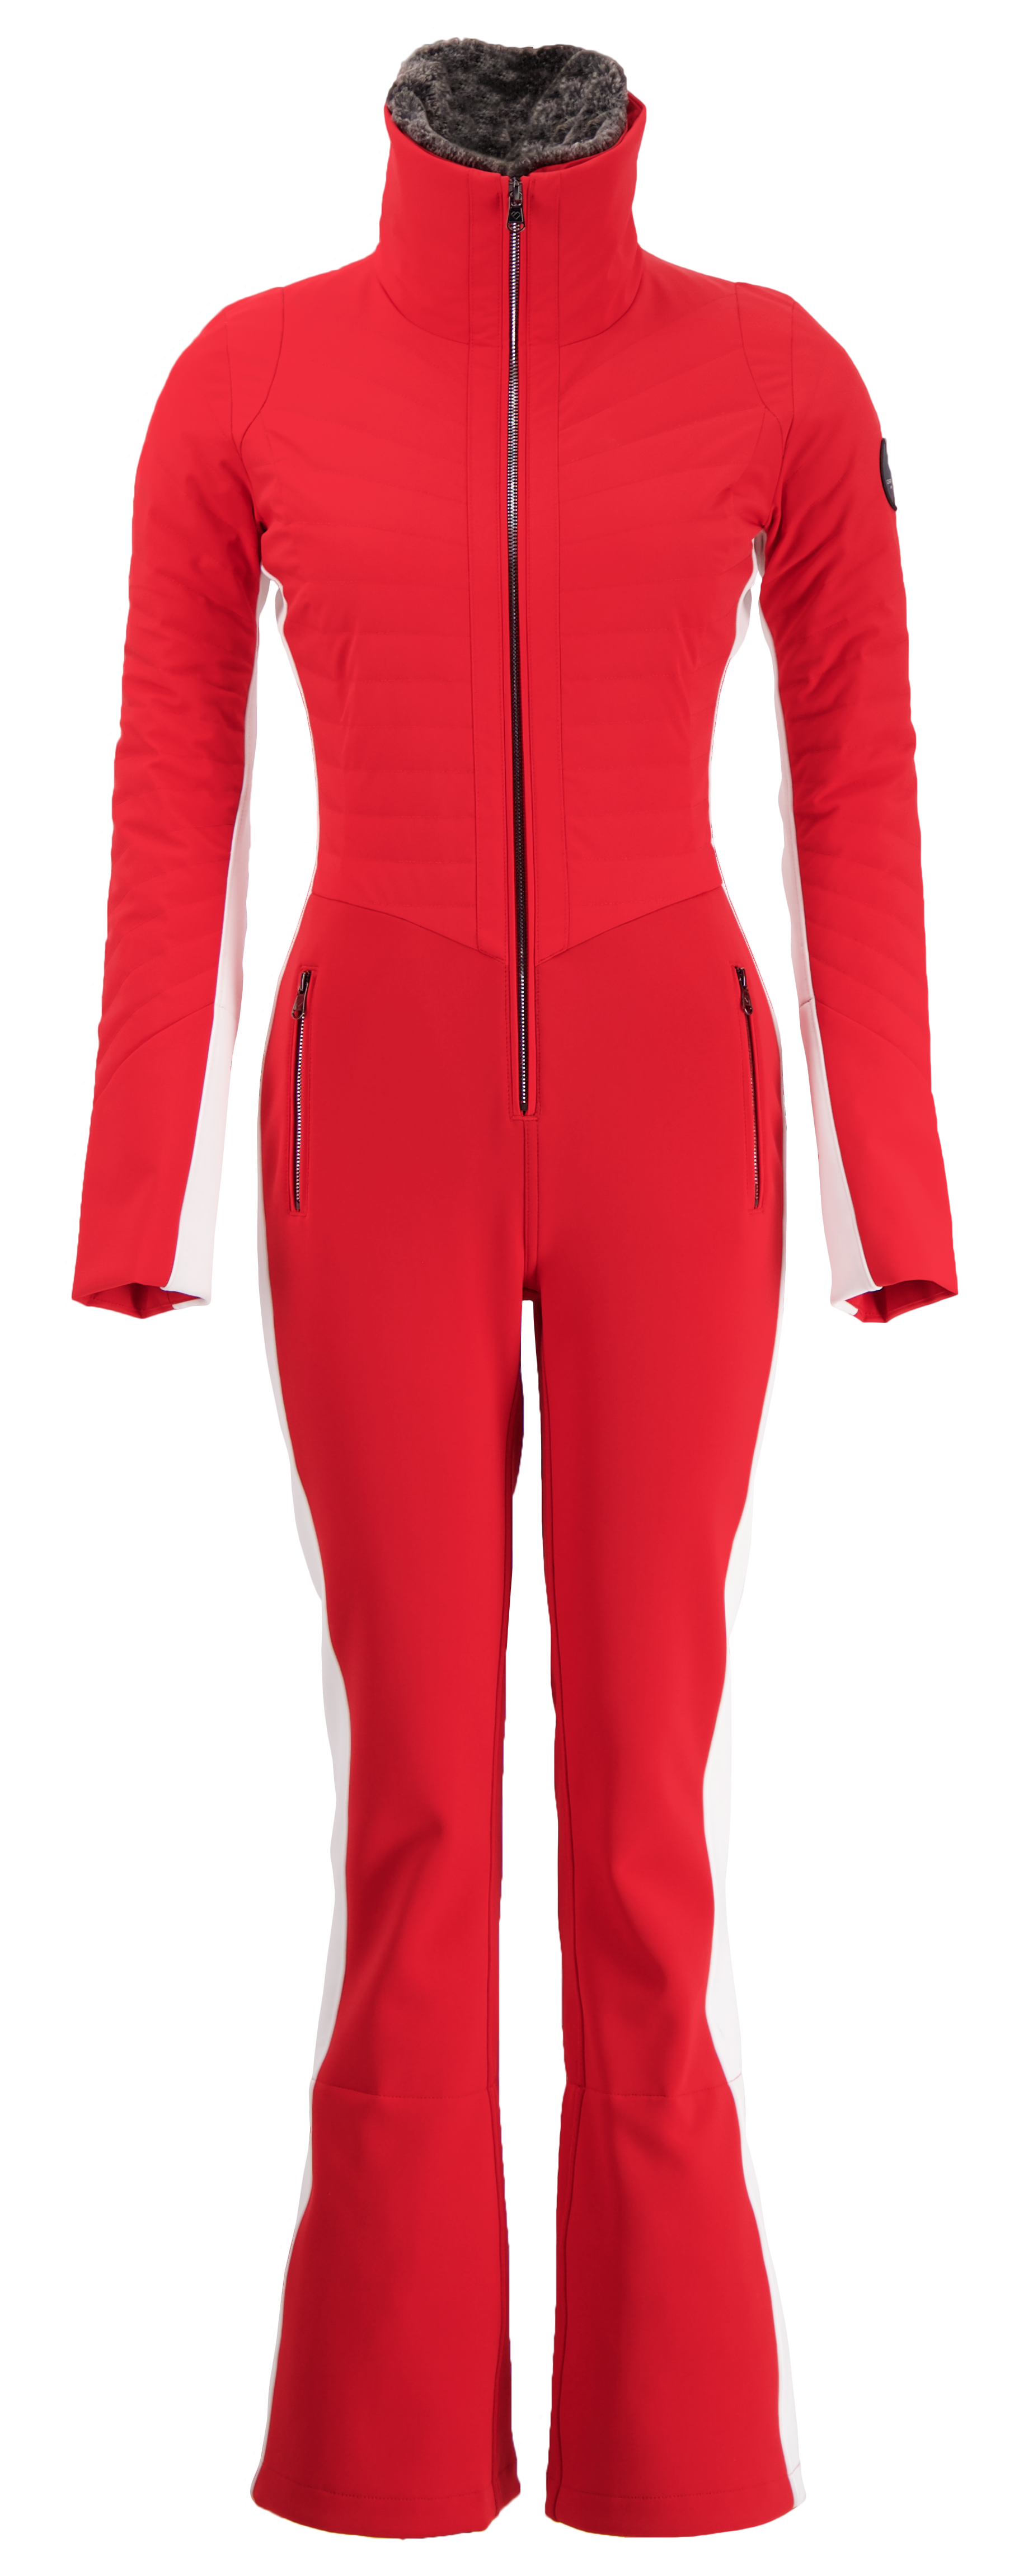 Designed for female skiers with a 15 percent narrower grip, $70.